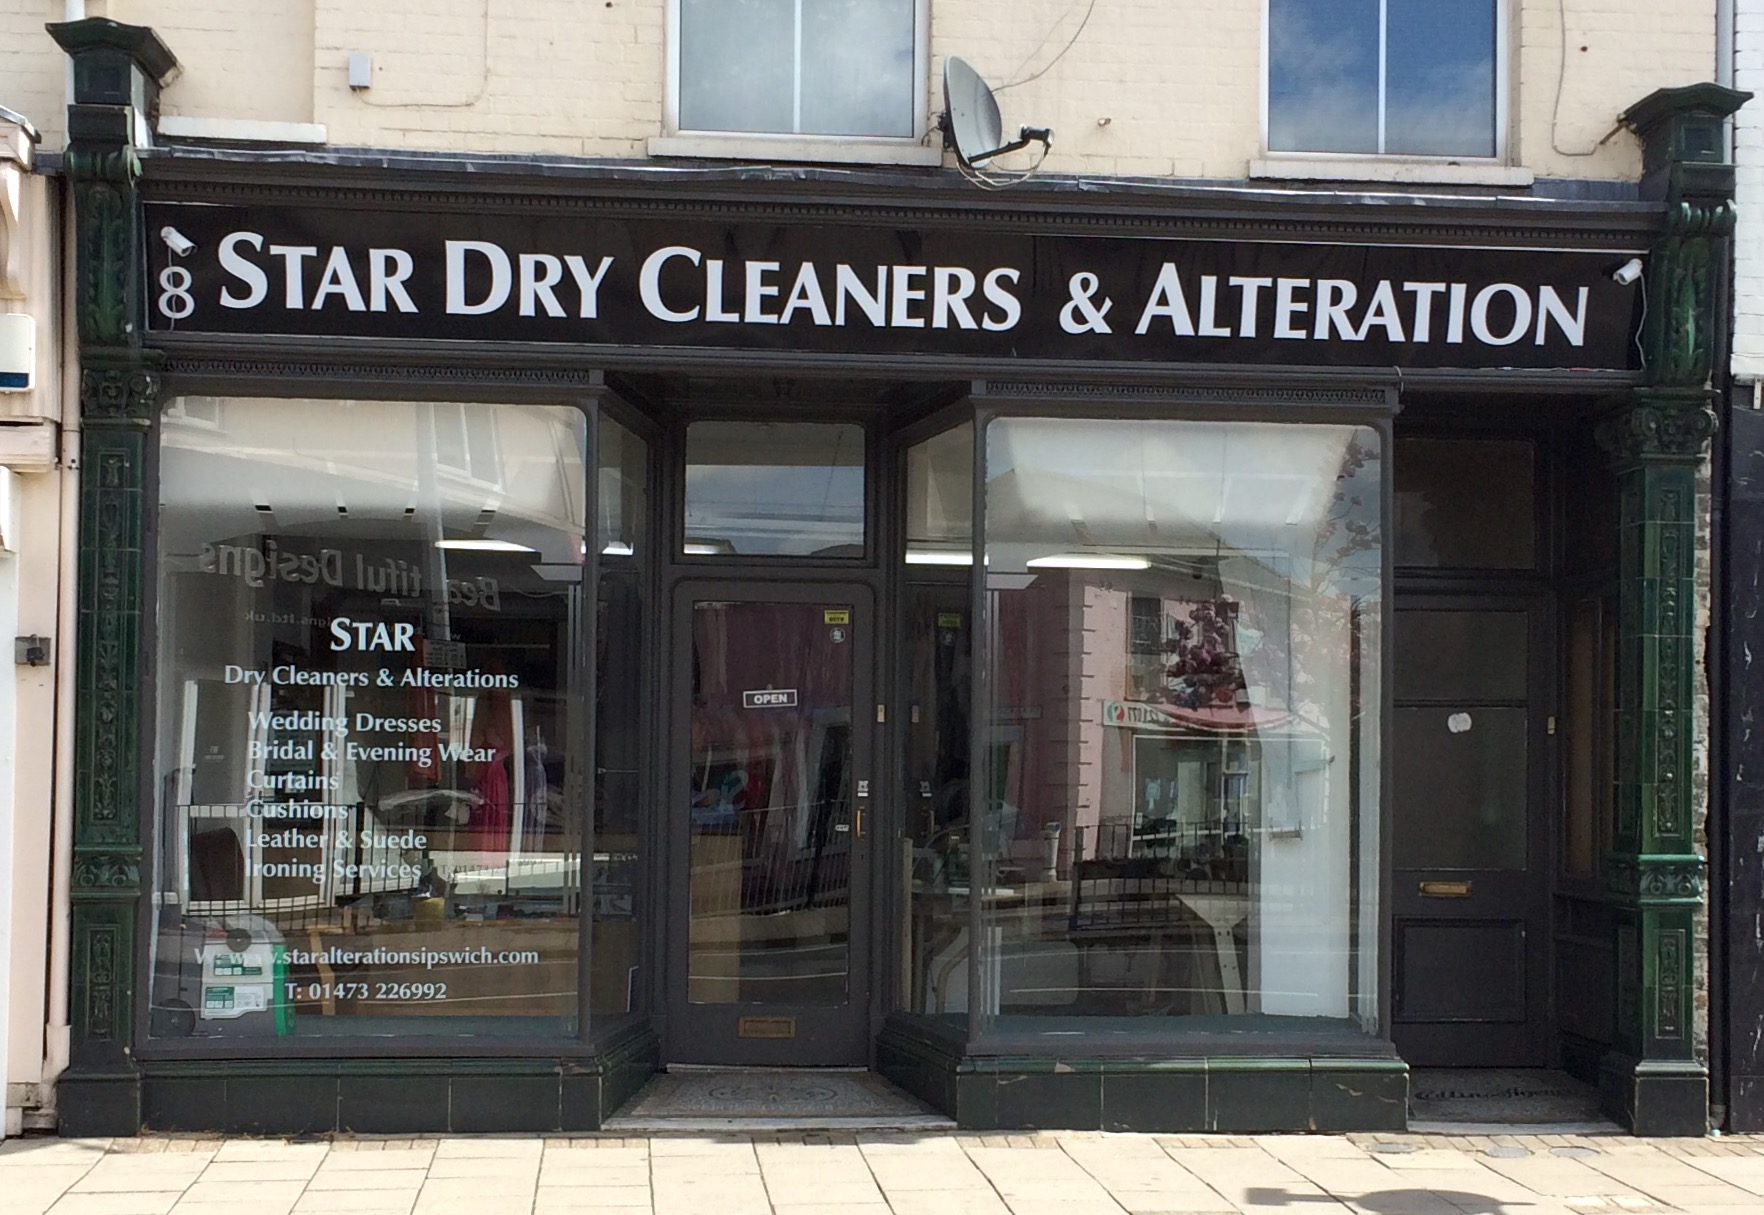 Star Dry Cleaners Alterations Dry Cleaning Clothing Alterations In Ipswich